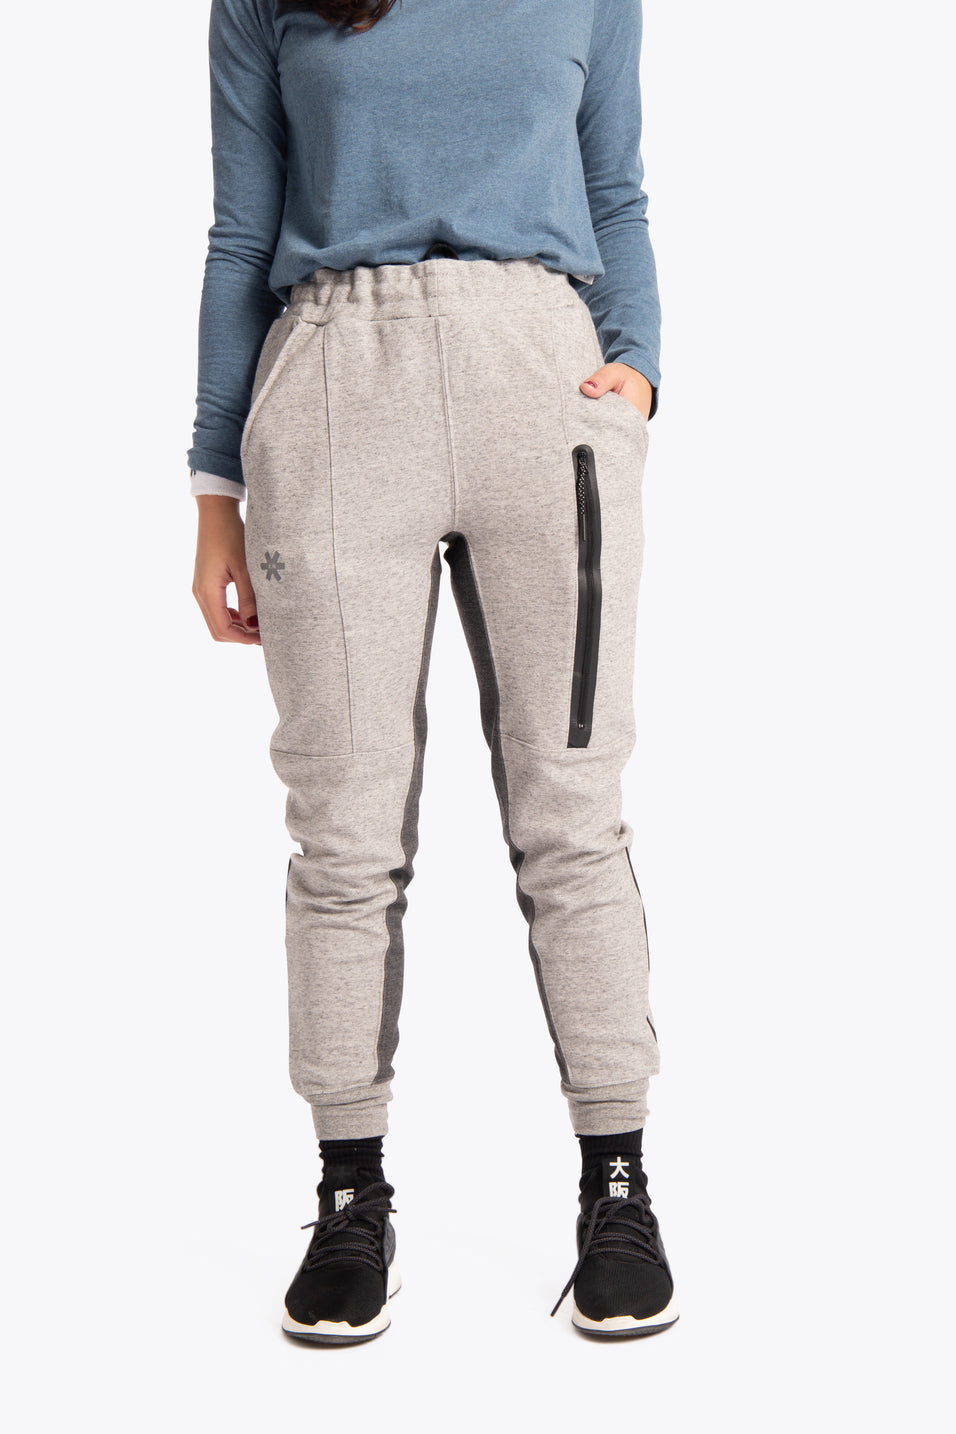 Women Techleisure Pant - Grey Melange